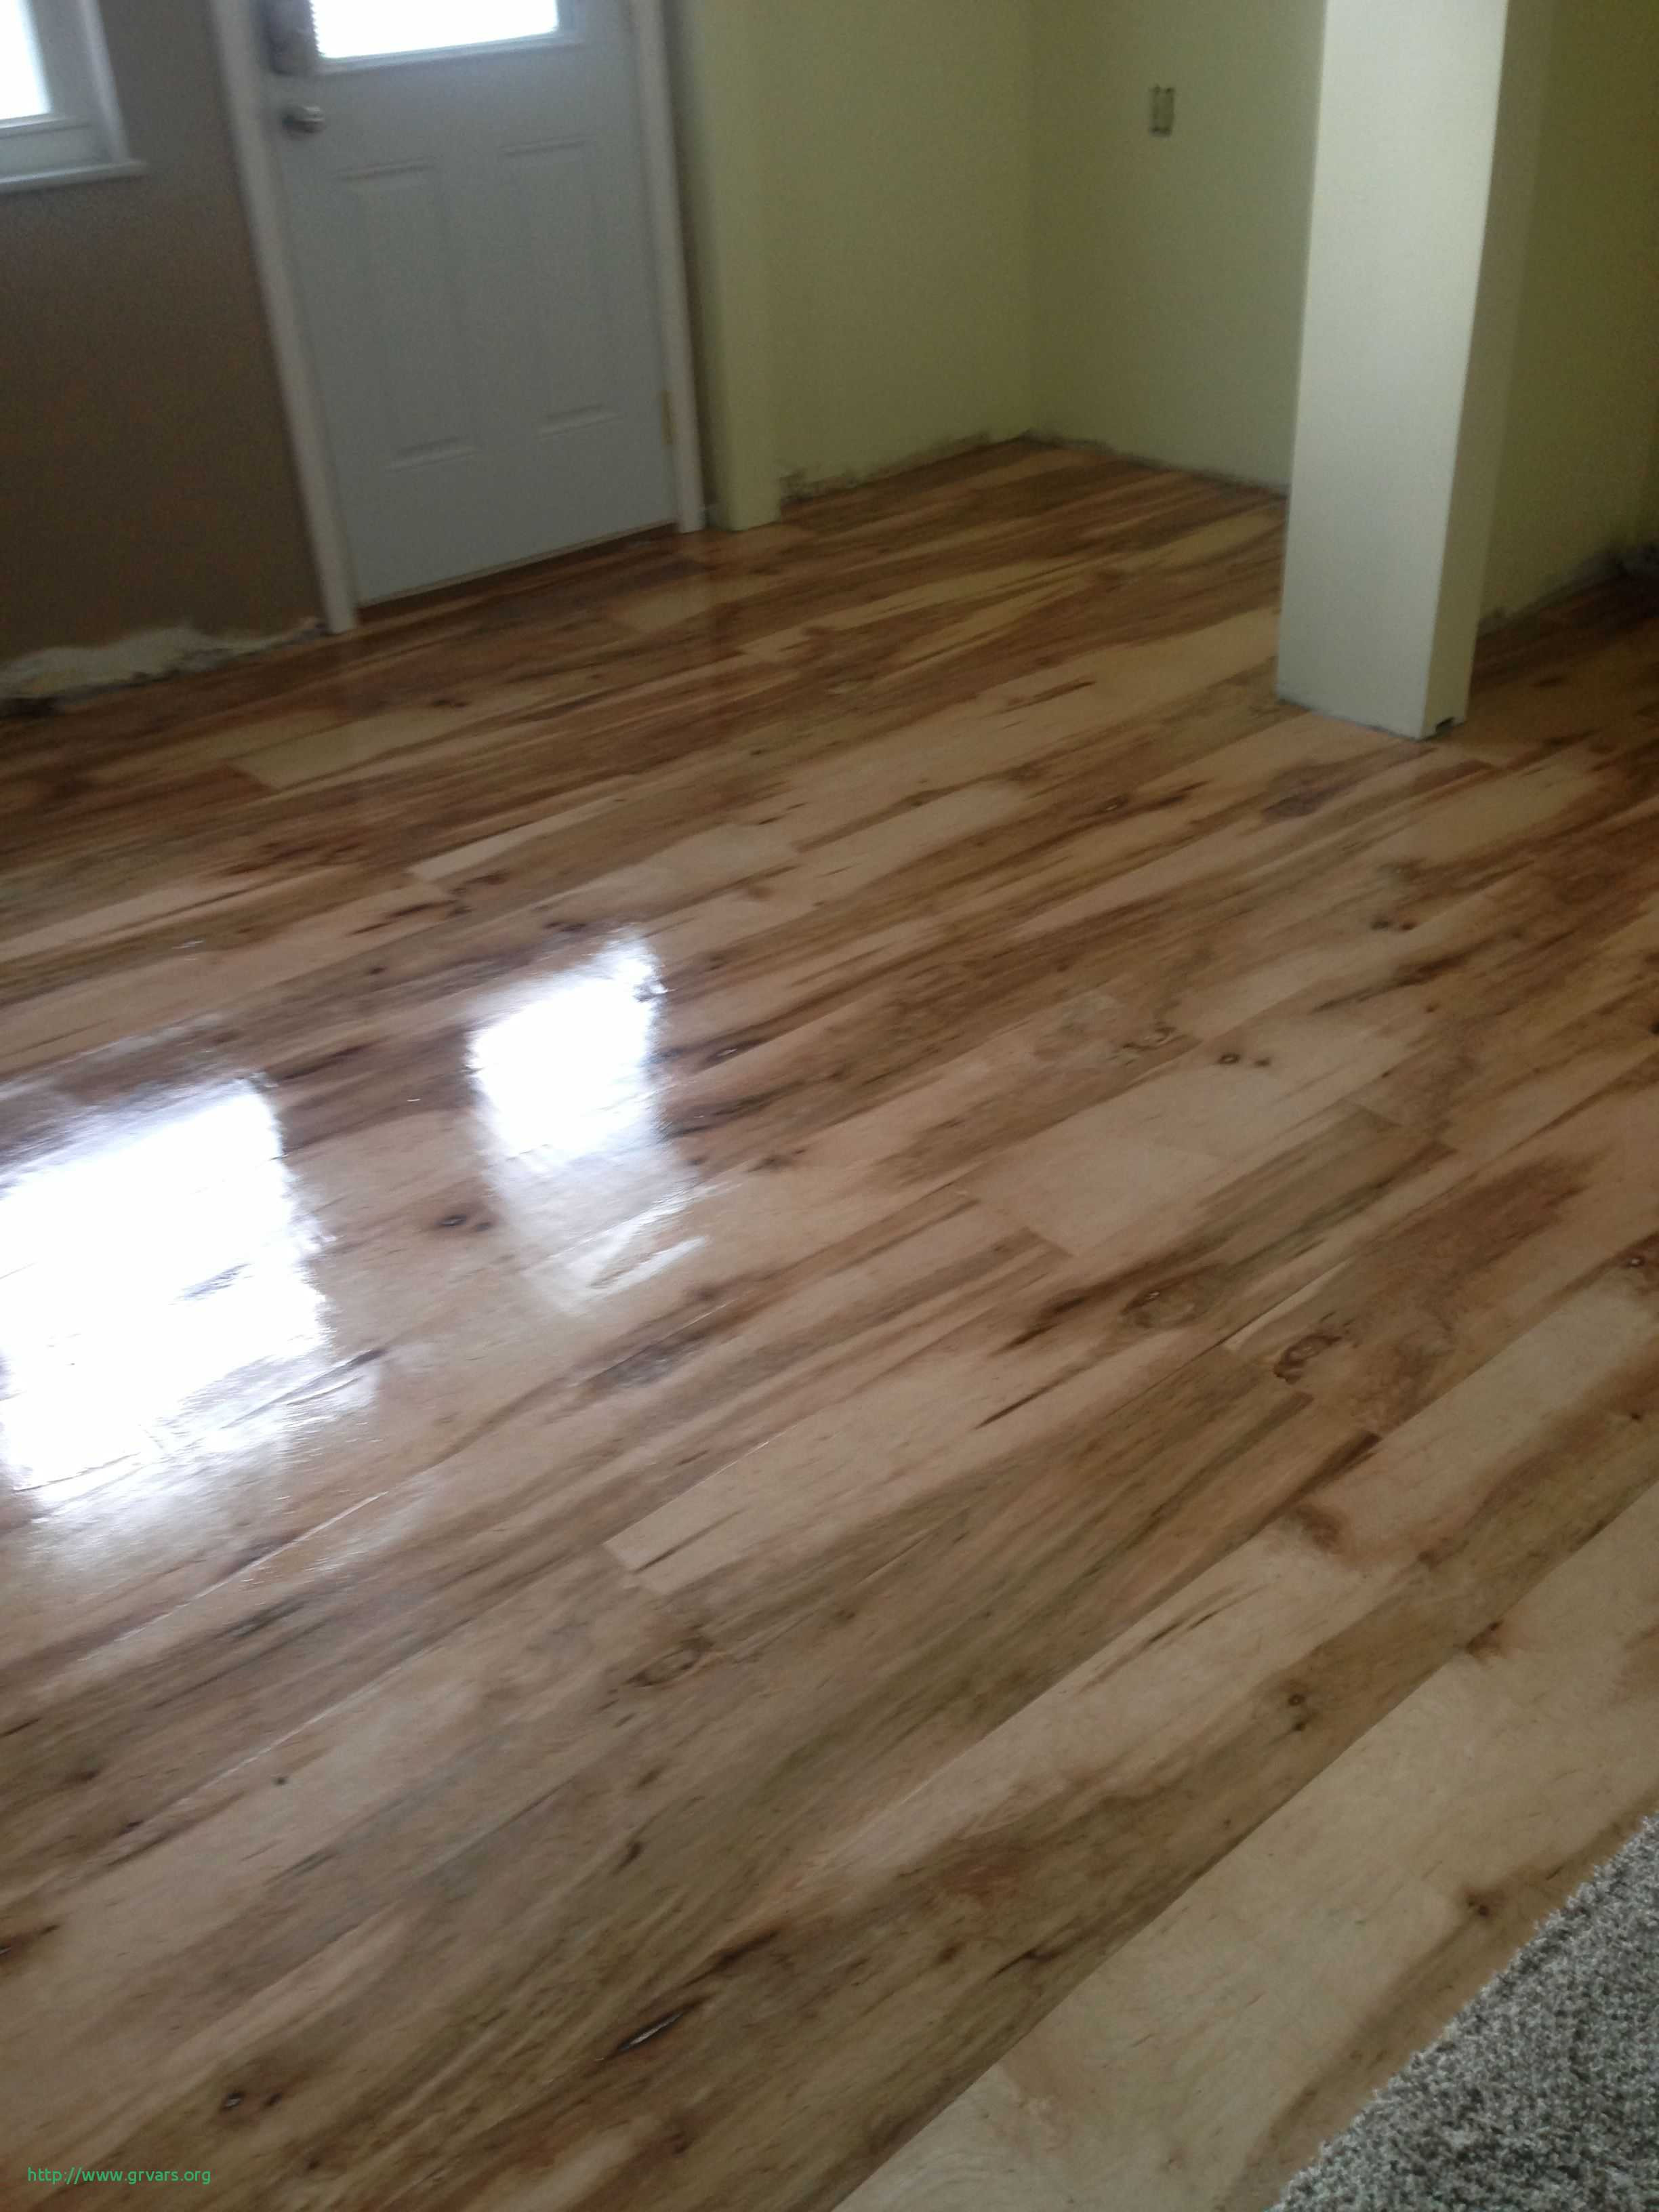 hardwood flooring prices of cheapest hardwood flooring flooring stores in tampa alagant engaging throughout cheapest hardwood flooring flooring stores in tampa alagant engaging discount hardwood flooring